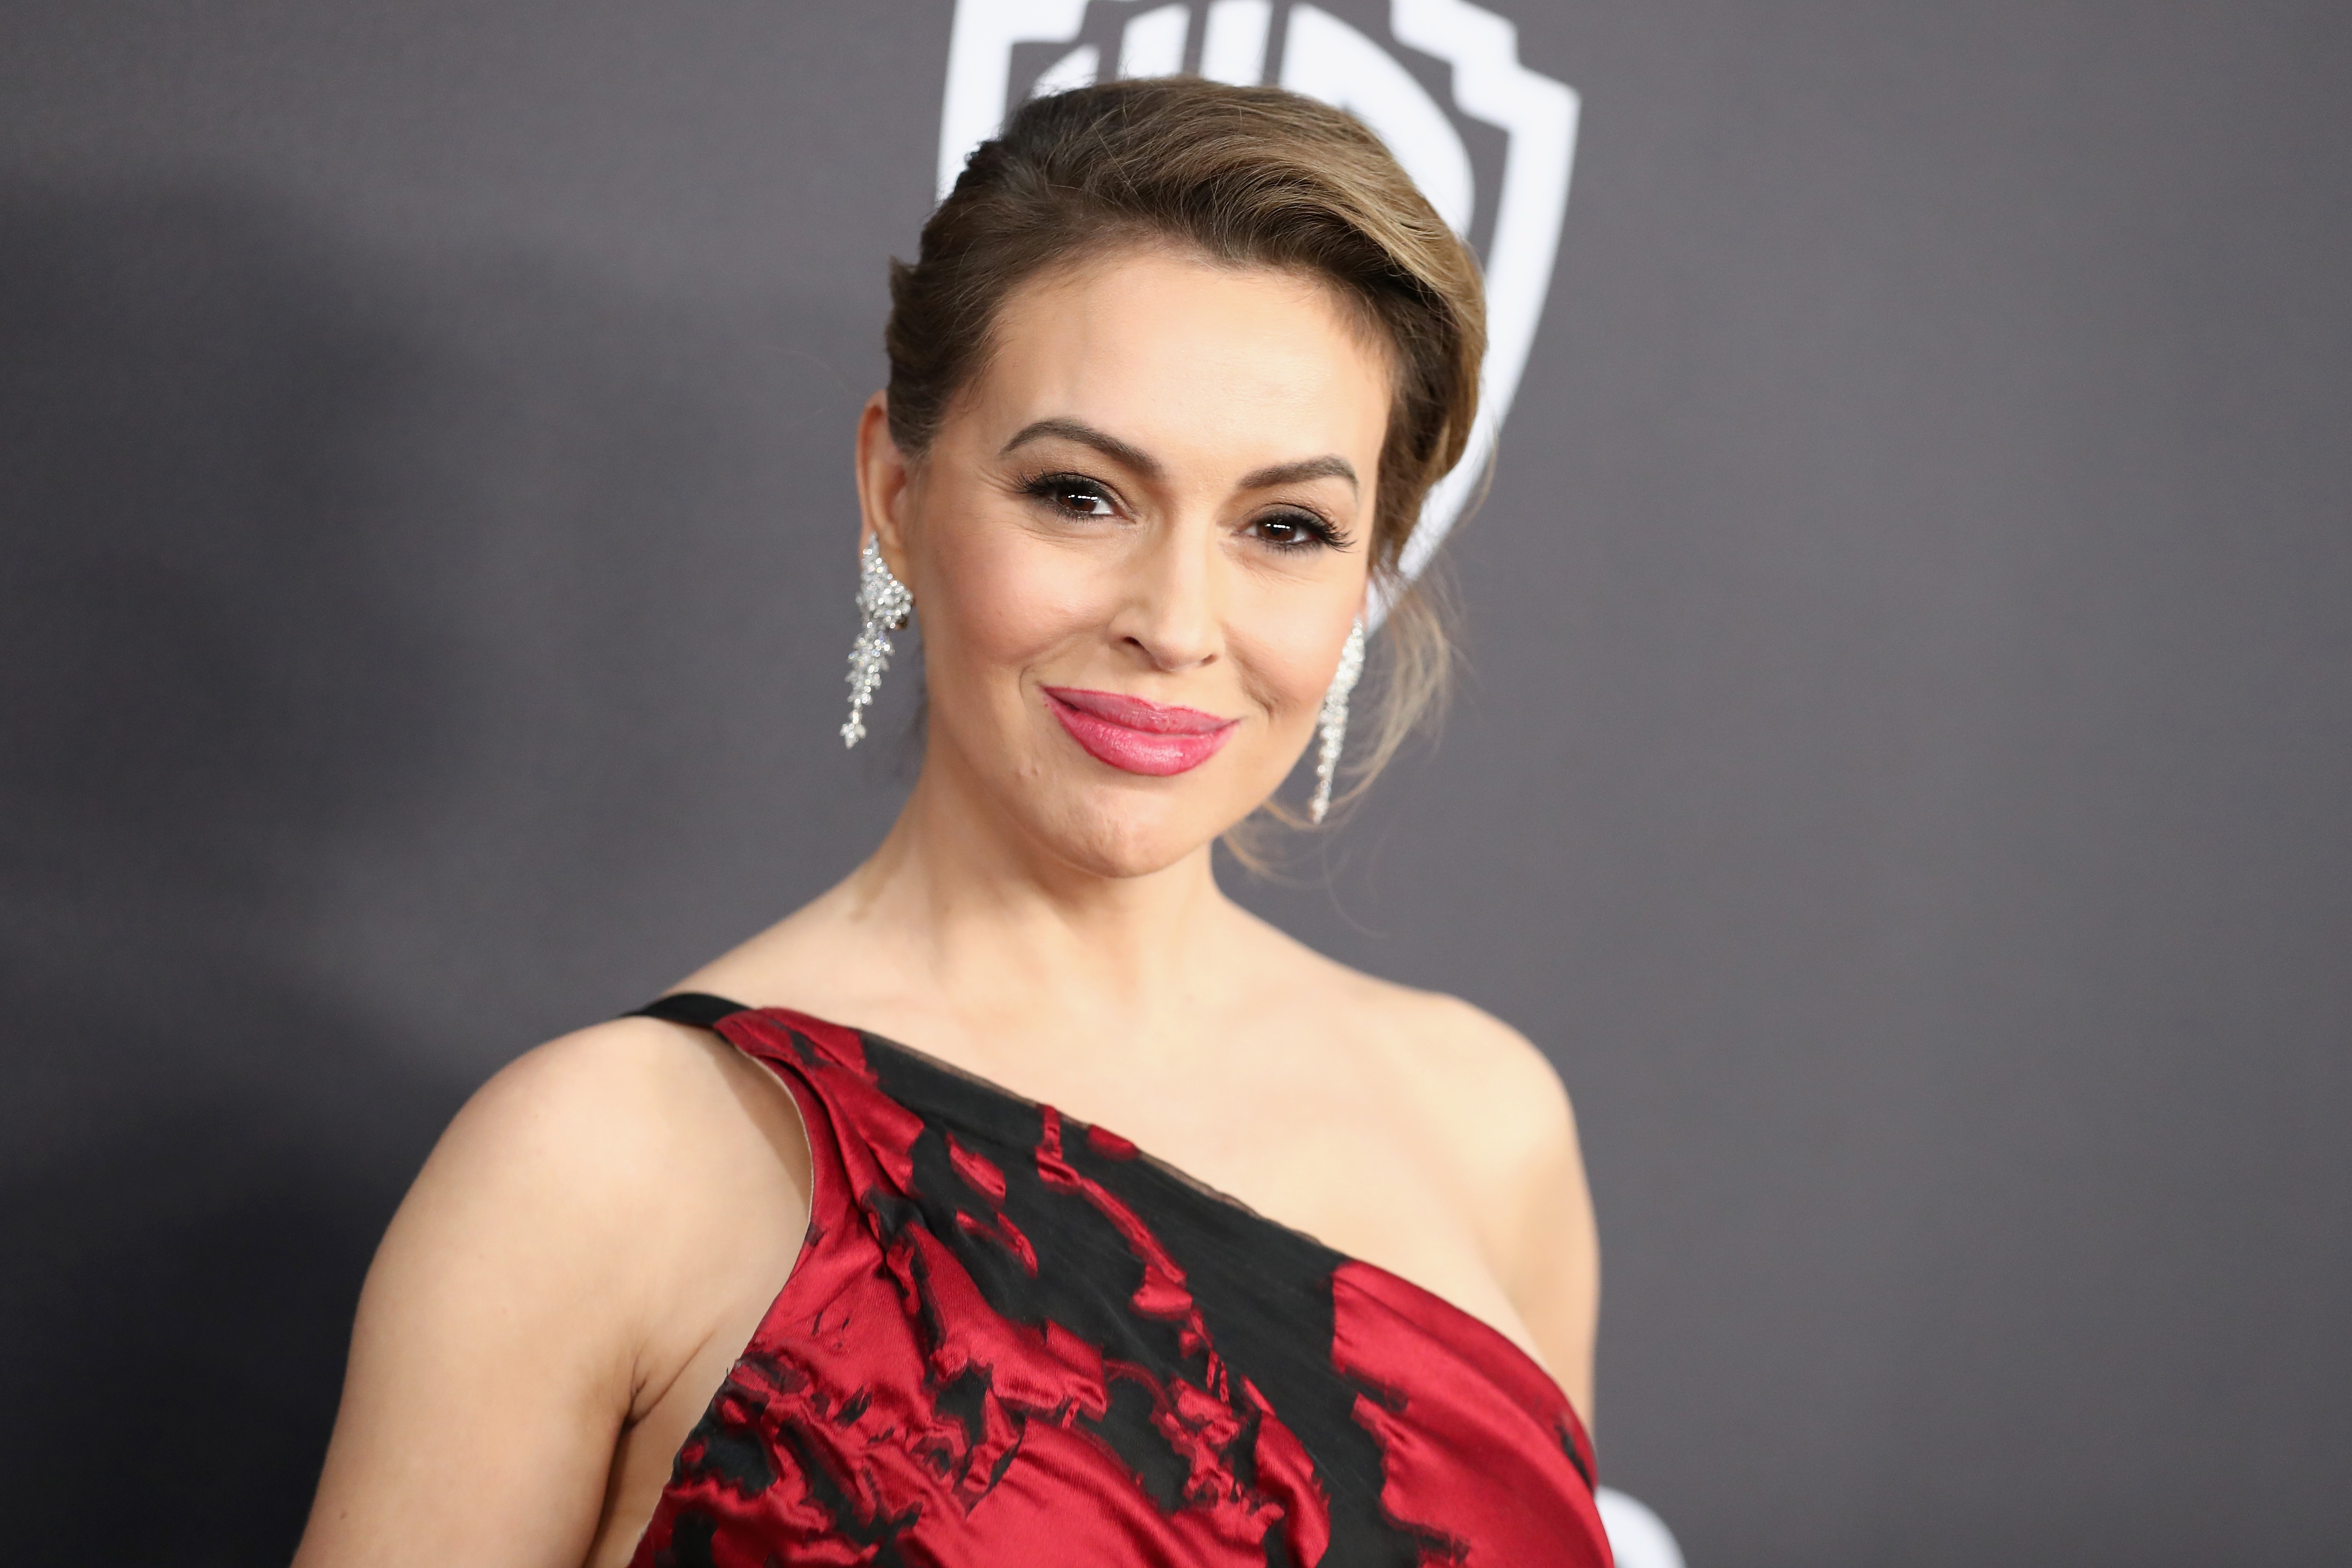 Alyssa Milano attends the InStyle And Warner Bros. Golden Globes After Party 2019 at The Beverly Hilton Hotel on January 6, 2019 in Beverly Hills, California.